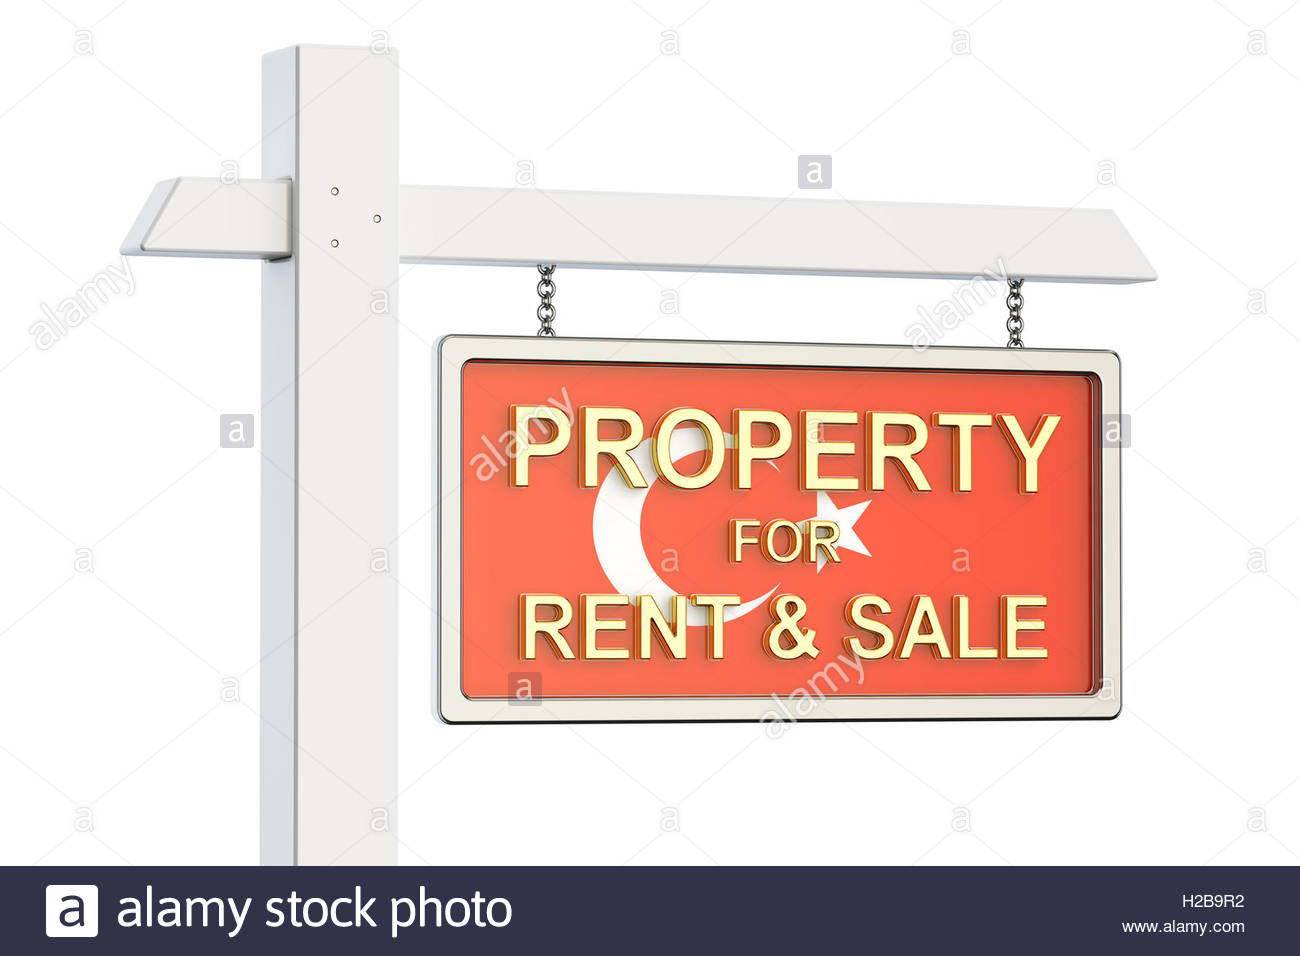 Property For Sale And Rent In Turkey Concept. Real Estate Sign, 3d.